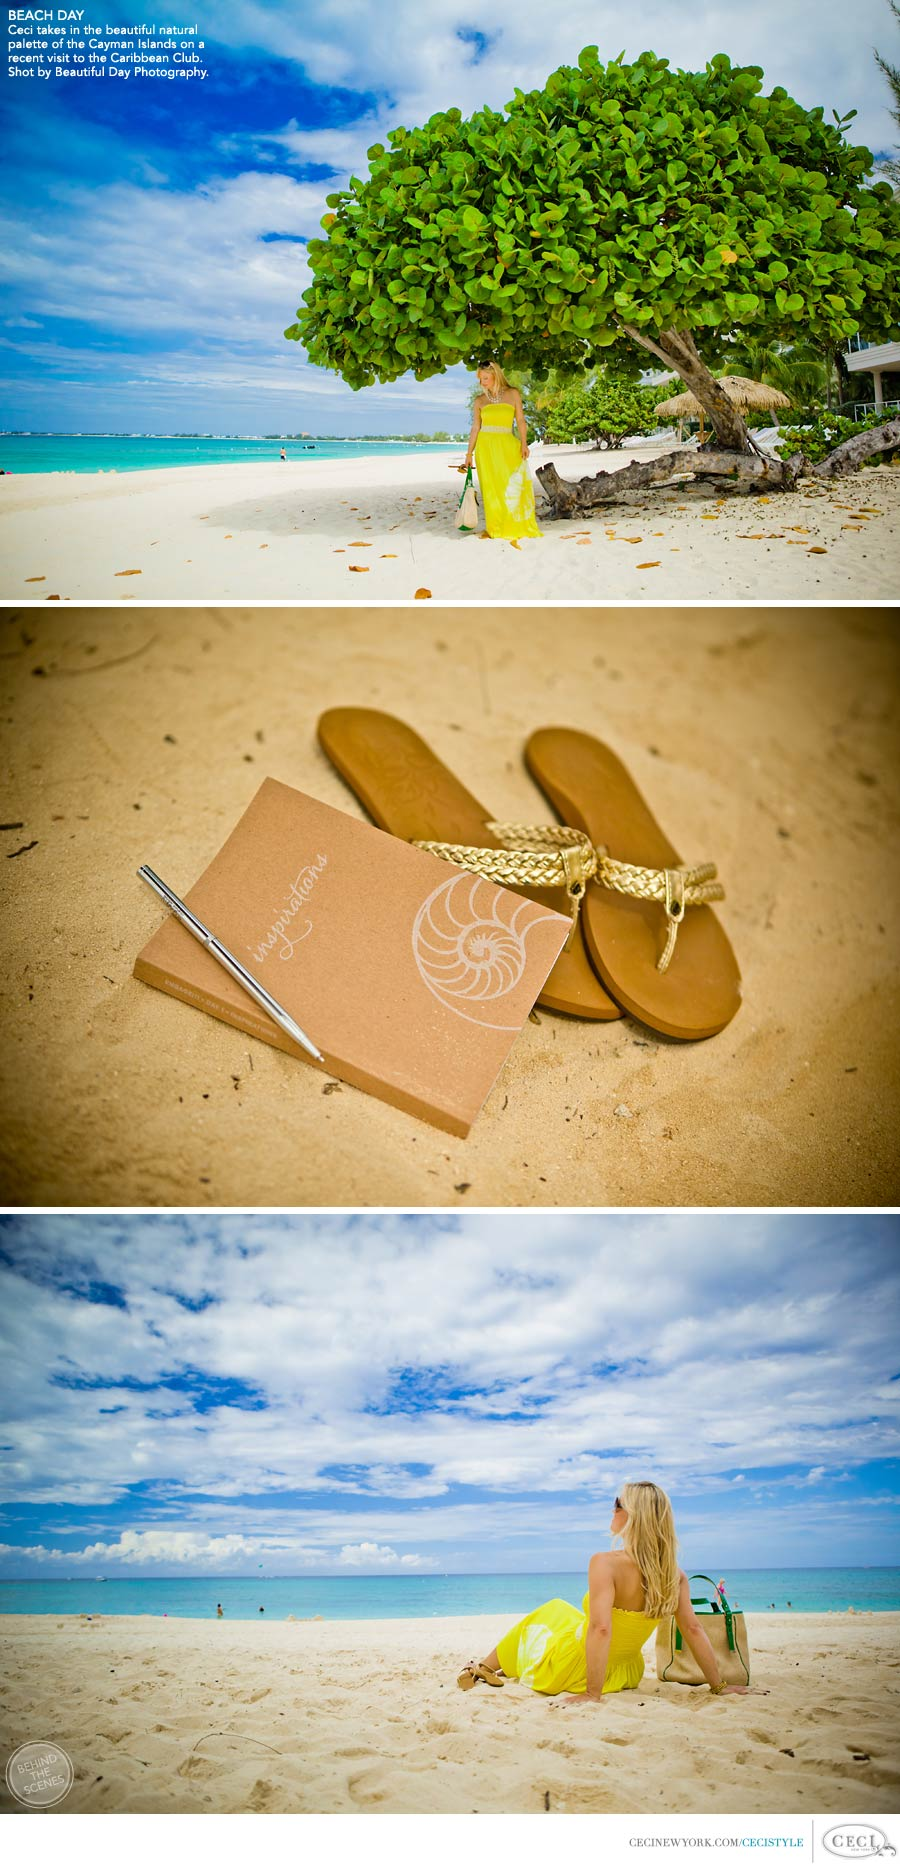 Ceci Johnson of Ceci New York - BEACH DAY: Ceci takes in the beautiful natural palette of the Cayman Islands on a recent visit to the Caribbean Club. Shot by Beautiful Day Photography.